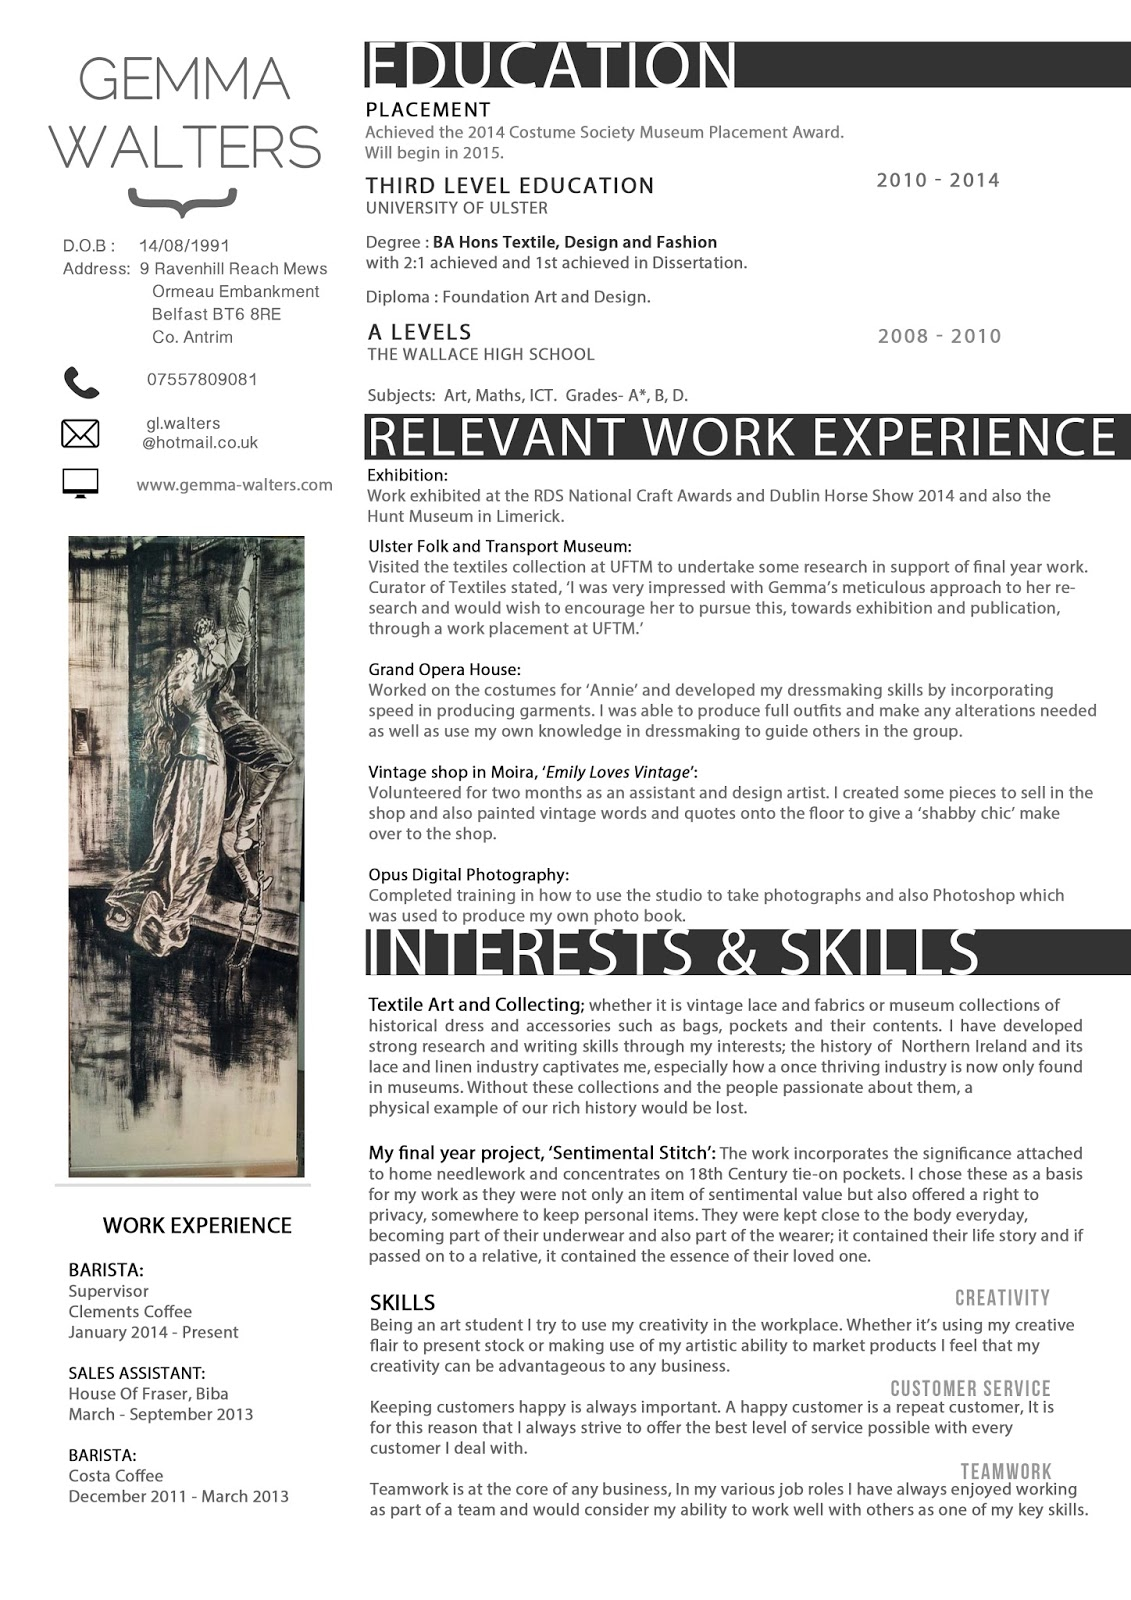 sample resume for web designer experienced possessions sample resume for web designer experienced possessions web - Resume Format For Web Designer